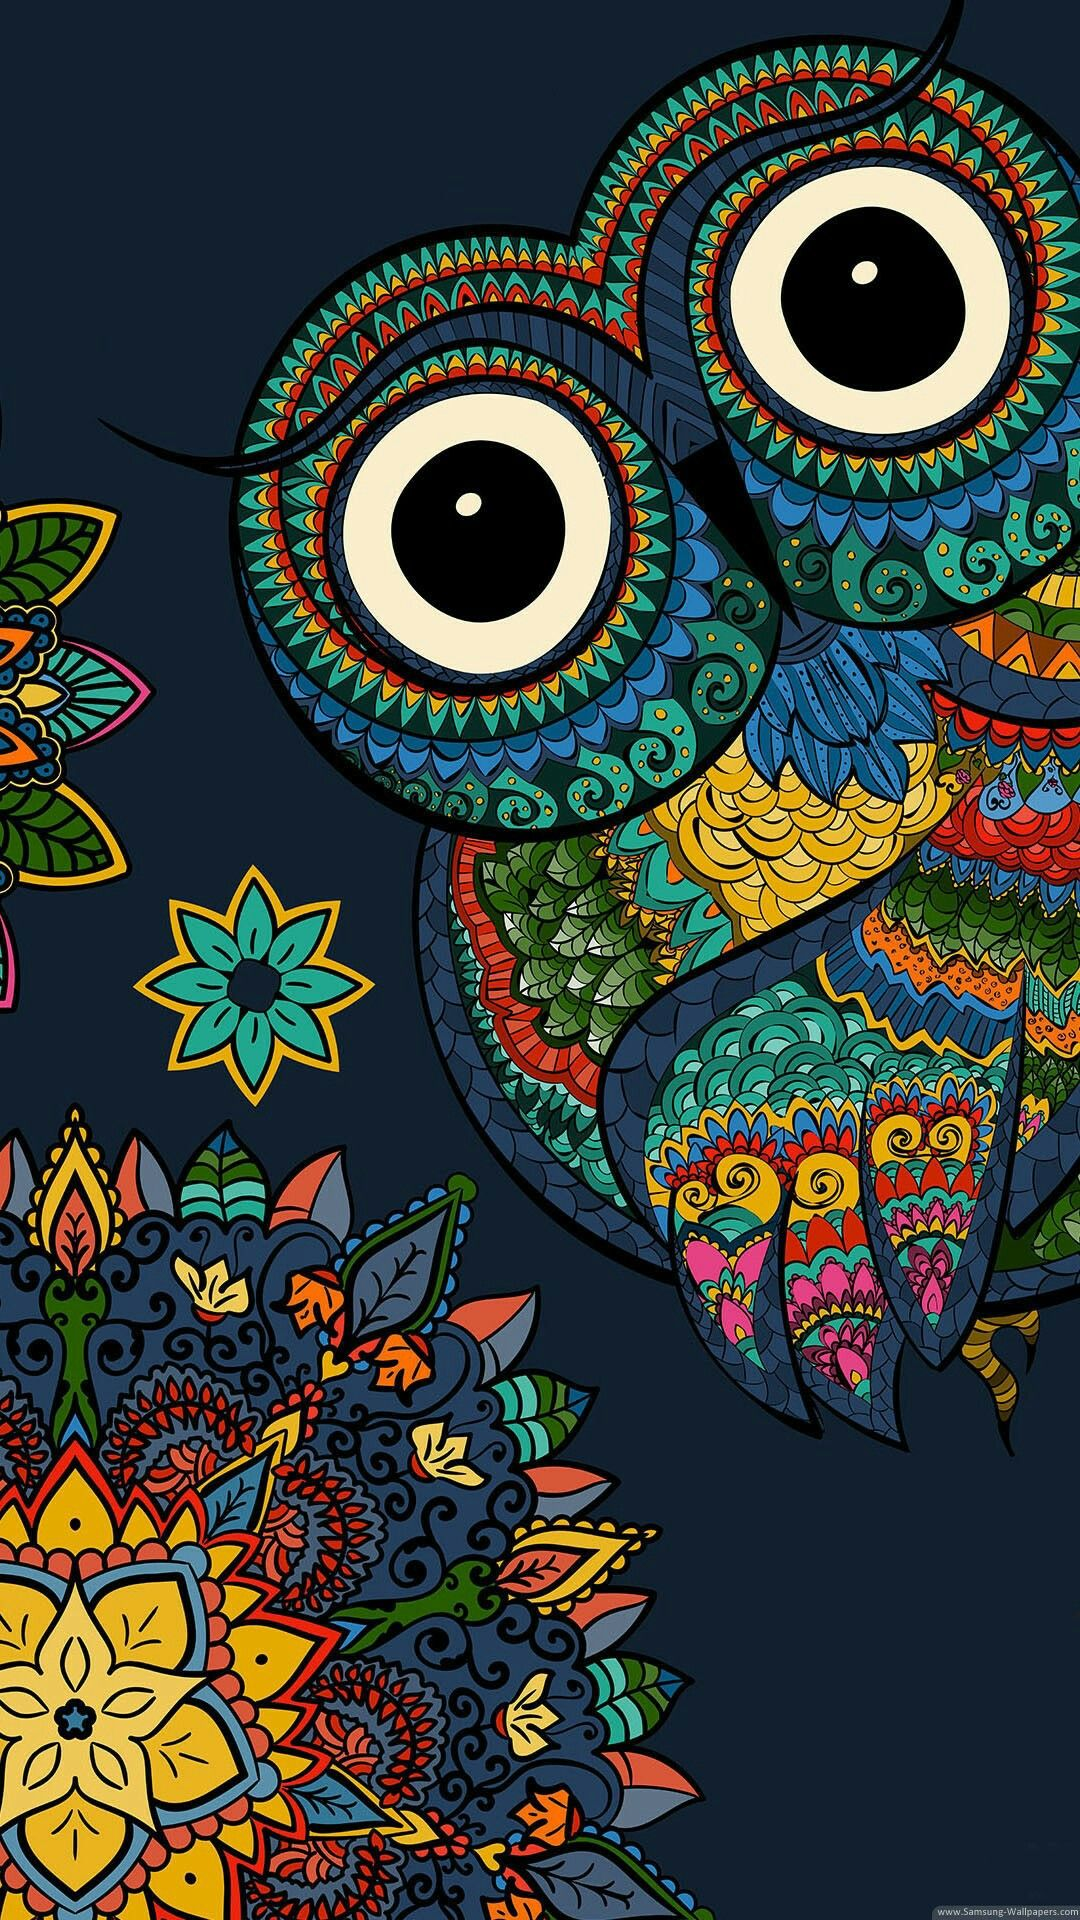 Pin By Lolo Rose On Owl S Wallpapers Cute Owls Wallpaper Owl Wallpaper Iphone Owl Wallpaper